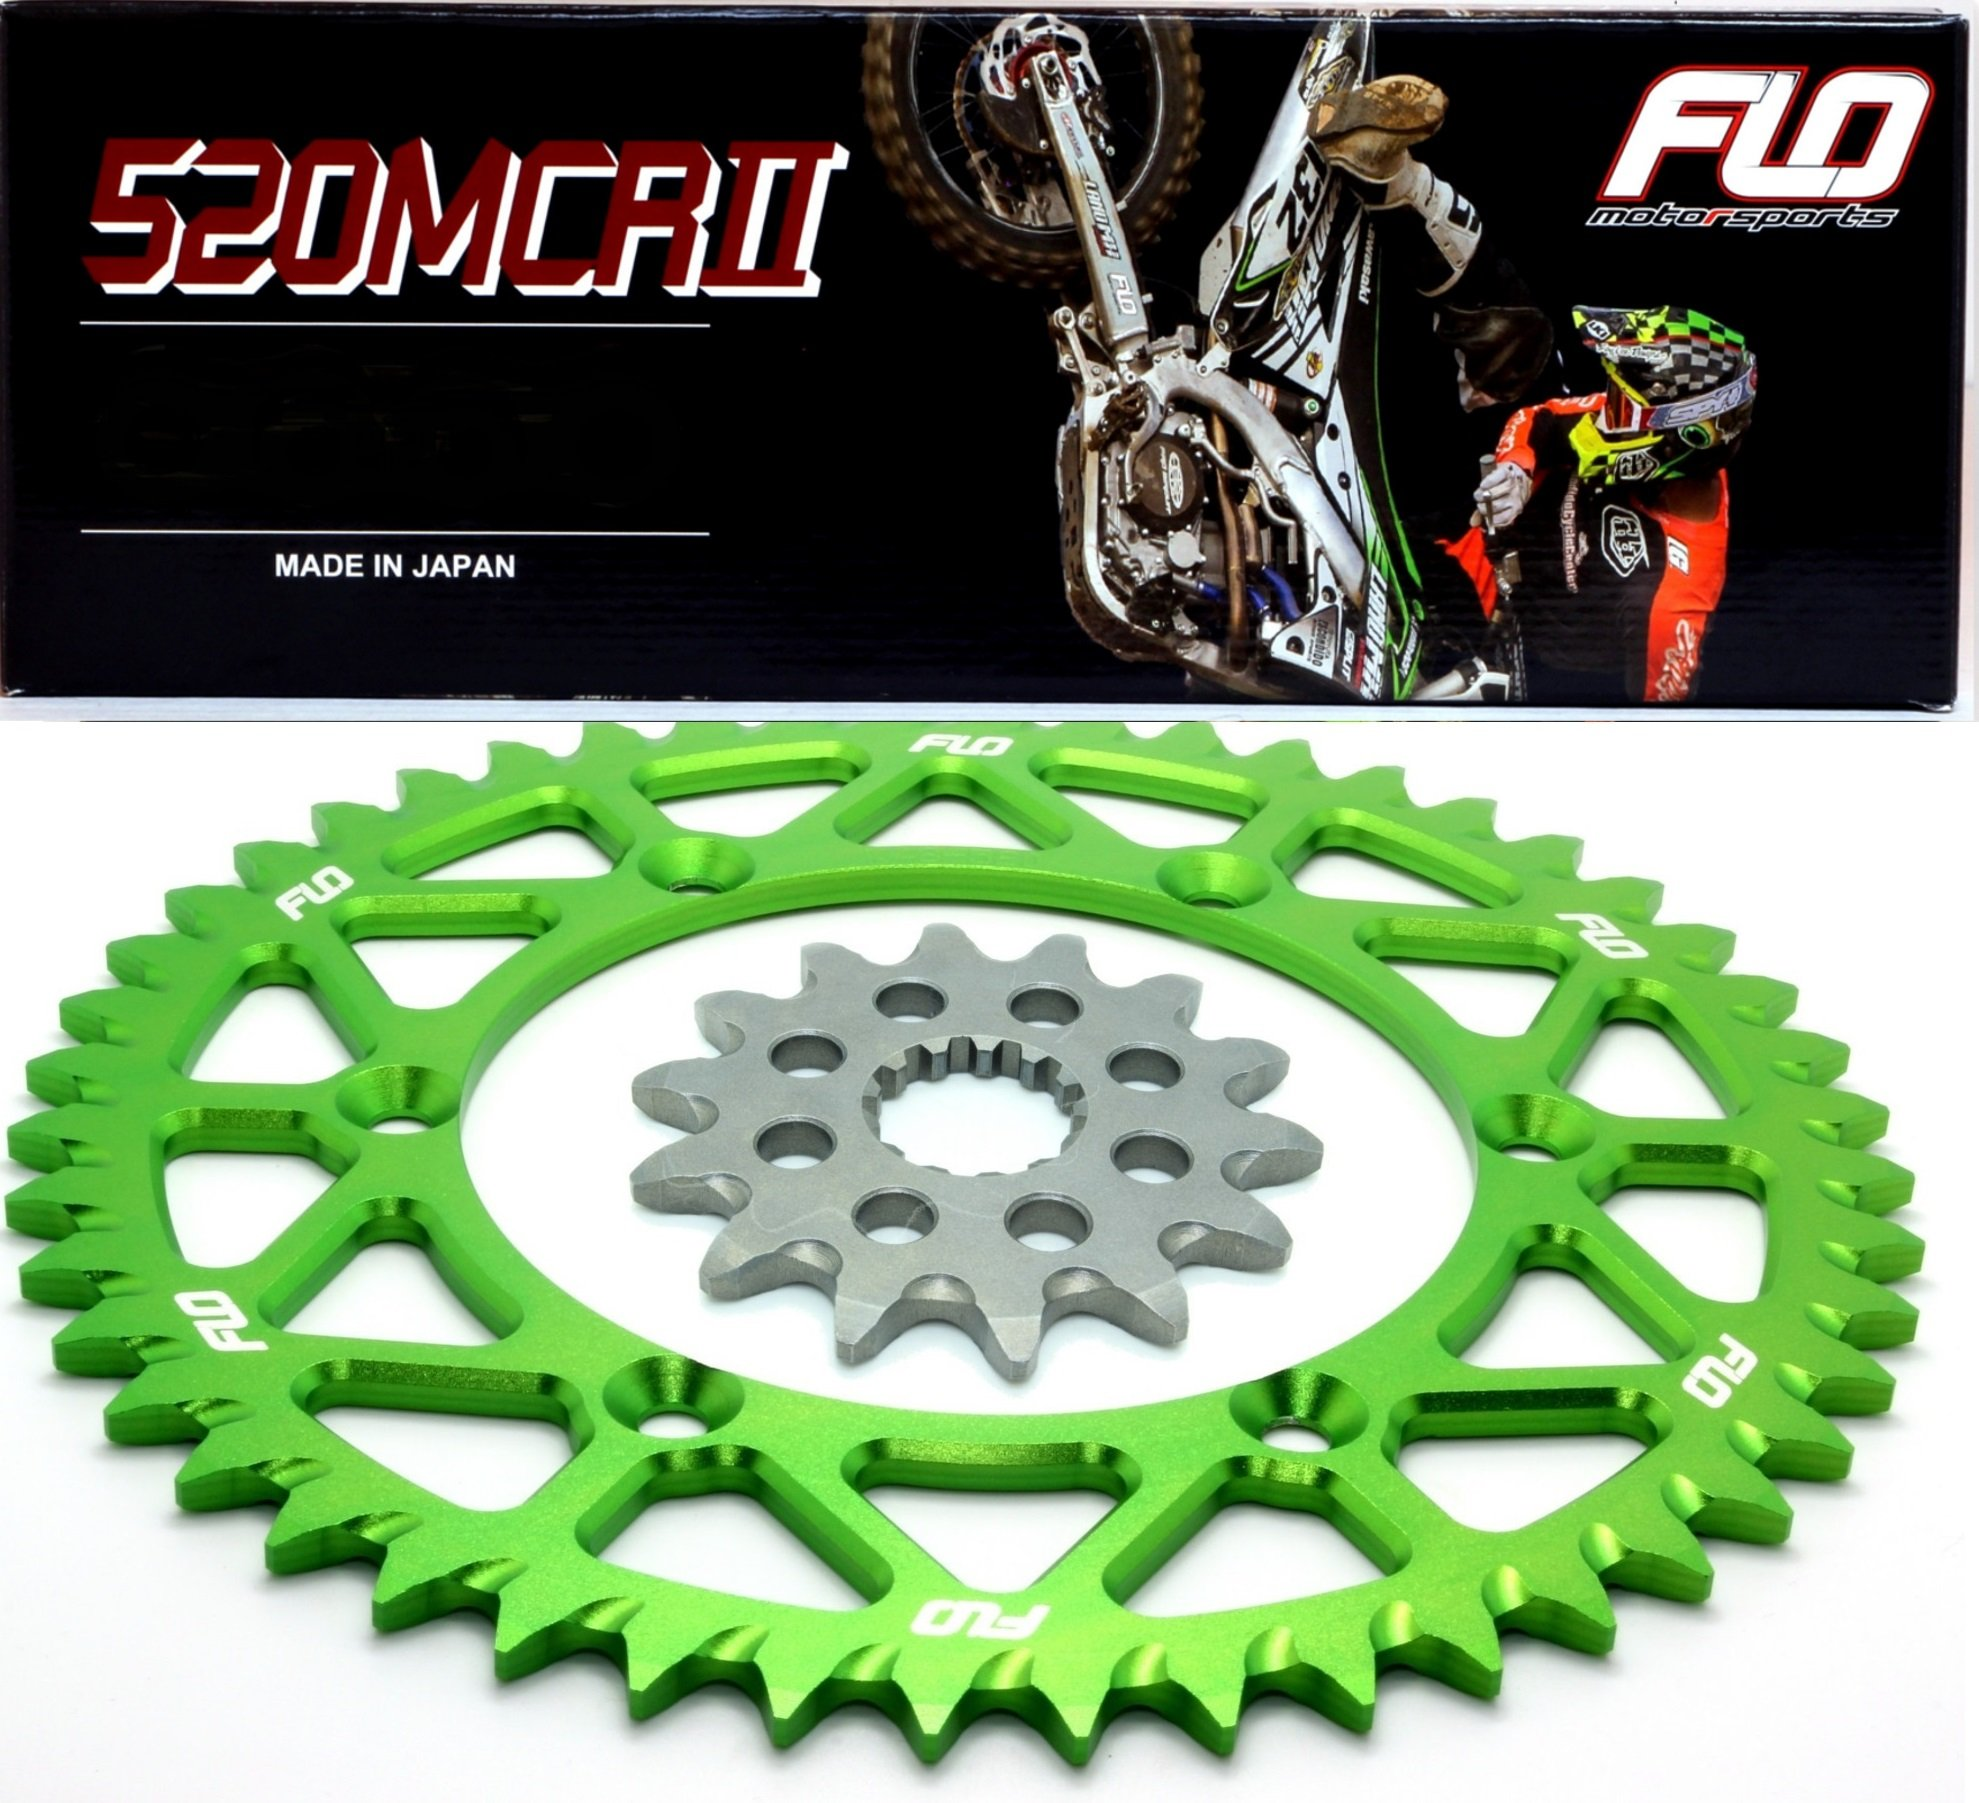 Flo Motorsports Gold Chain & Sprocket Combo Kit KAWASAKI KX250F FRONT SPROCKET 13T / REAR SPROCKET 48, 50, 51, 52, or 53 TOOTH (50T, Green) by Flo Motorsports